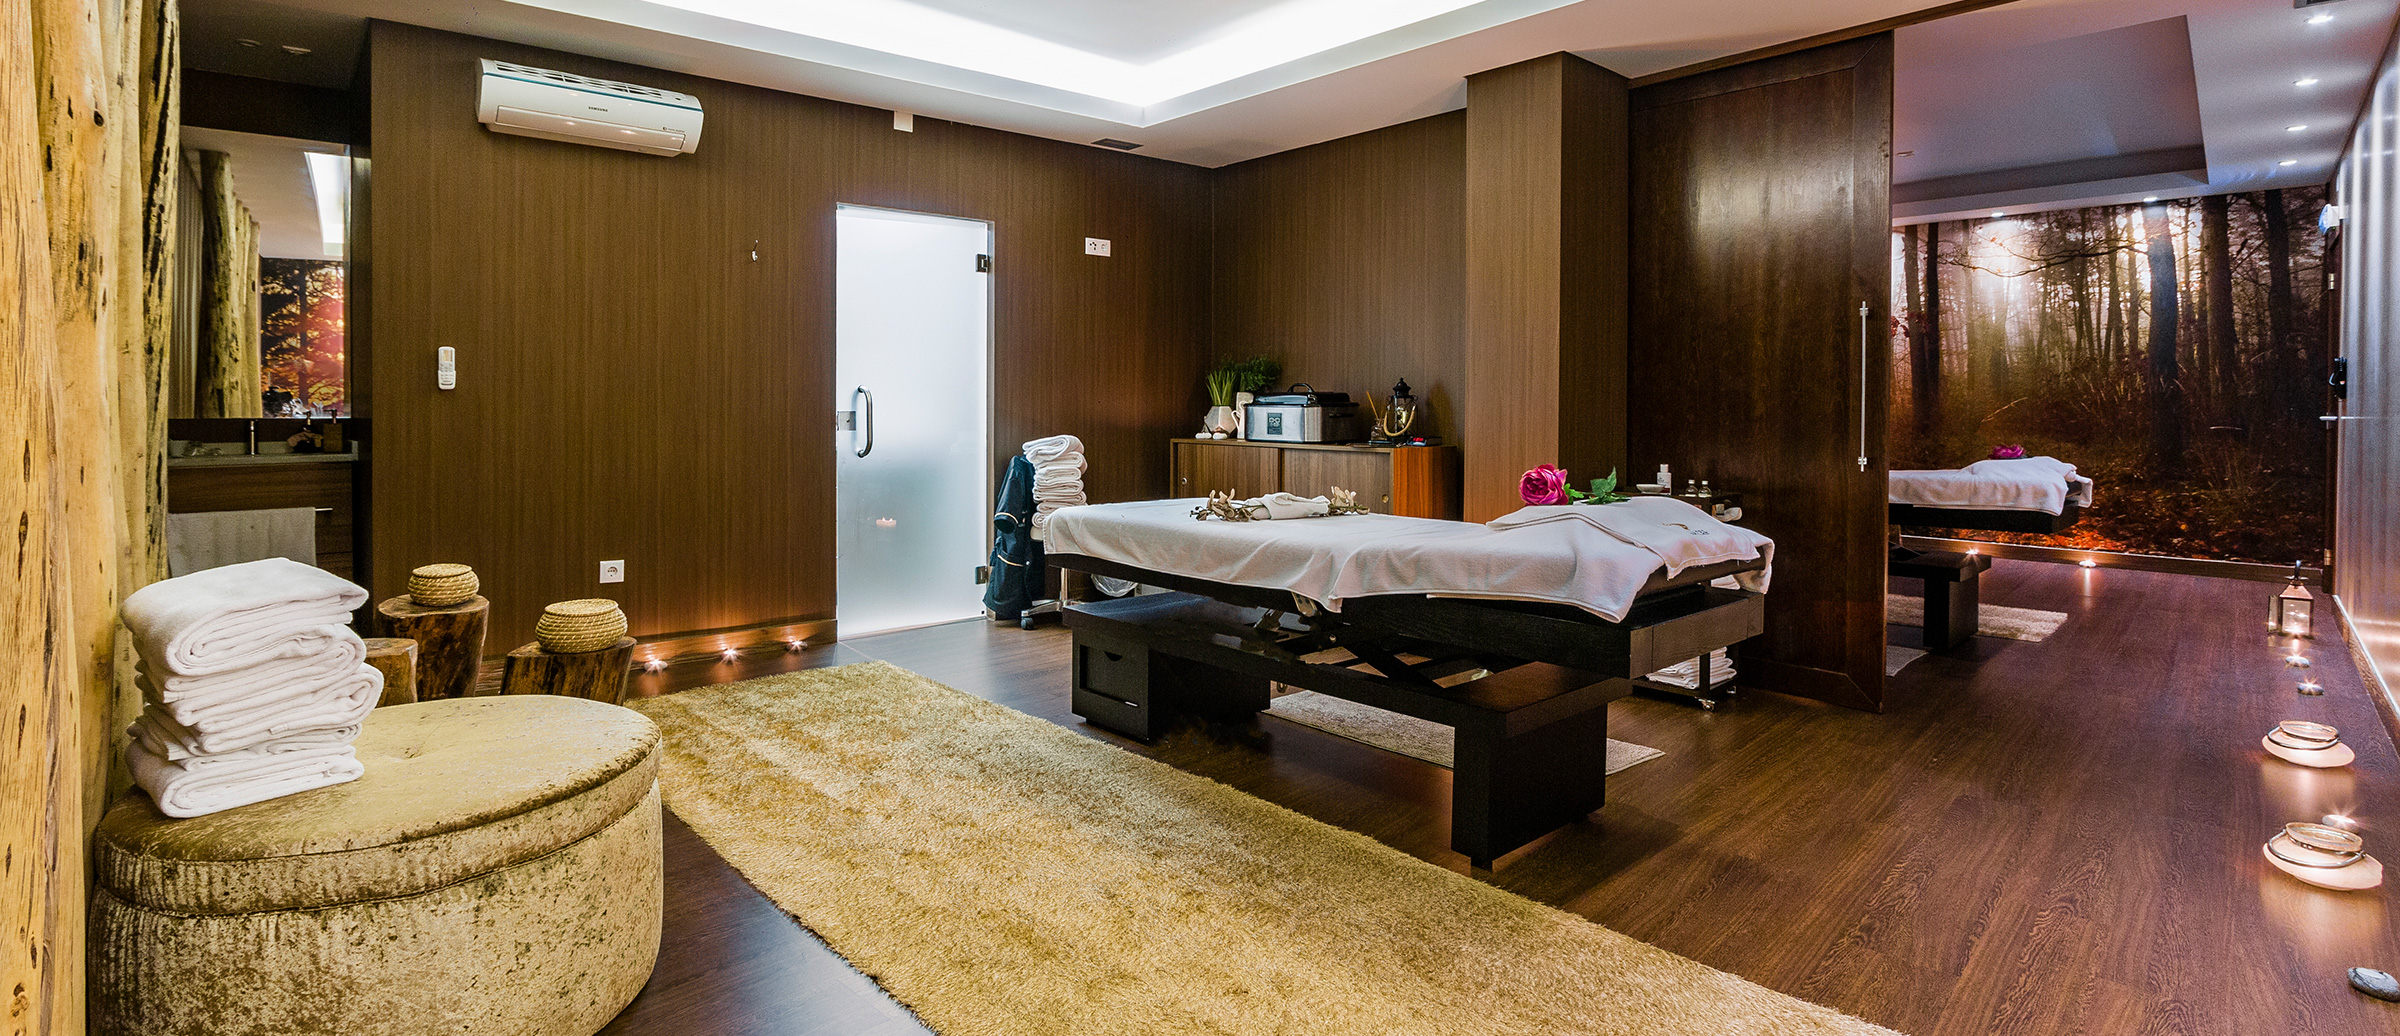 Sala de massagens do Spa Real - Lisotel Hotel & Spa